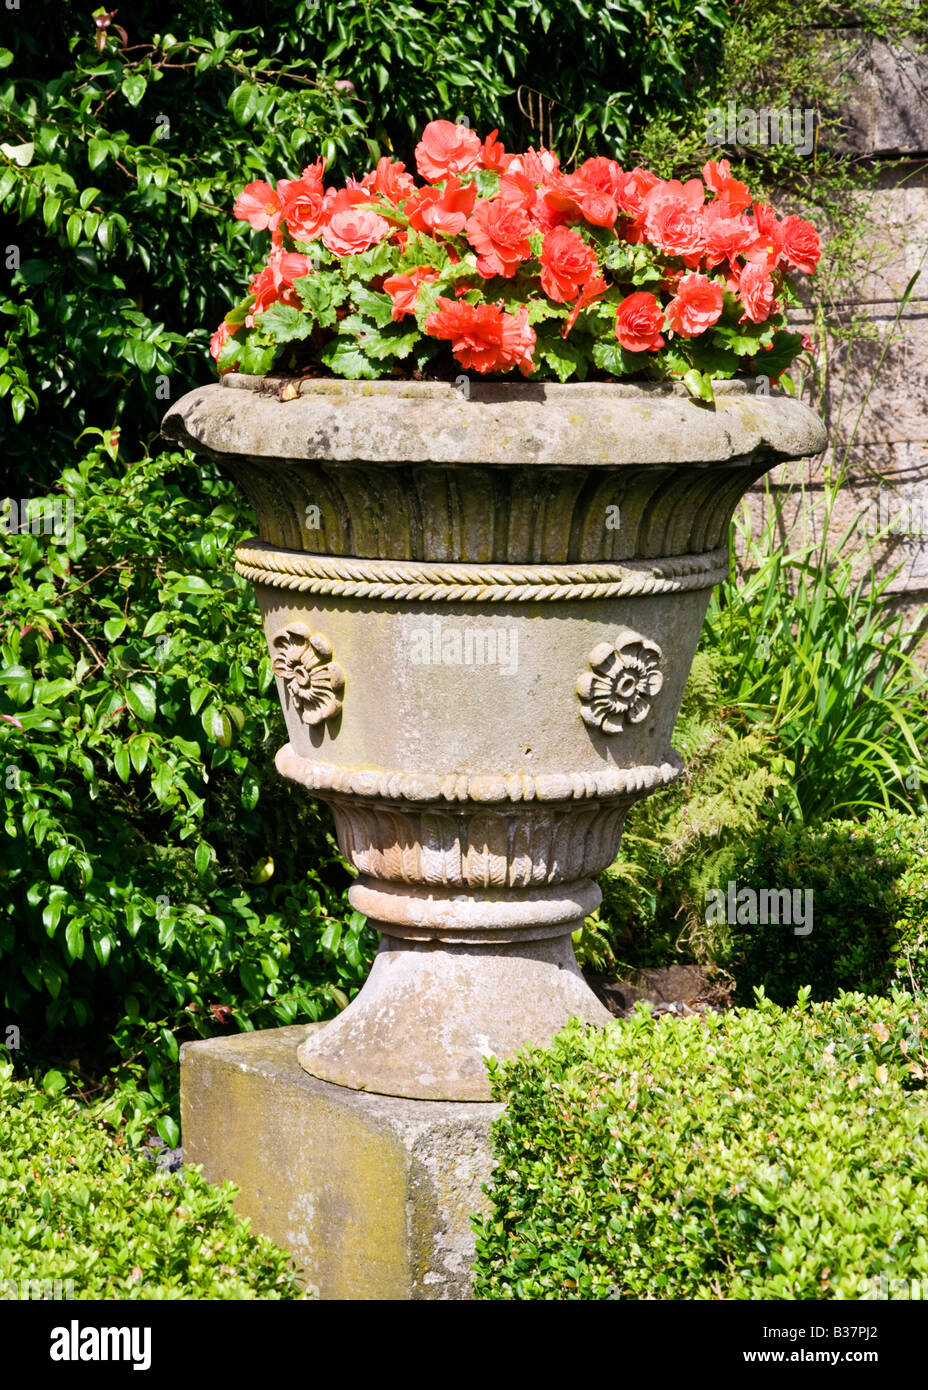 A stone garden urn filled with begonias Begoniaceae - Stock Image